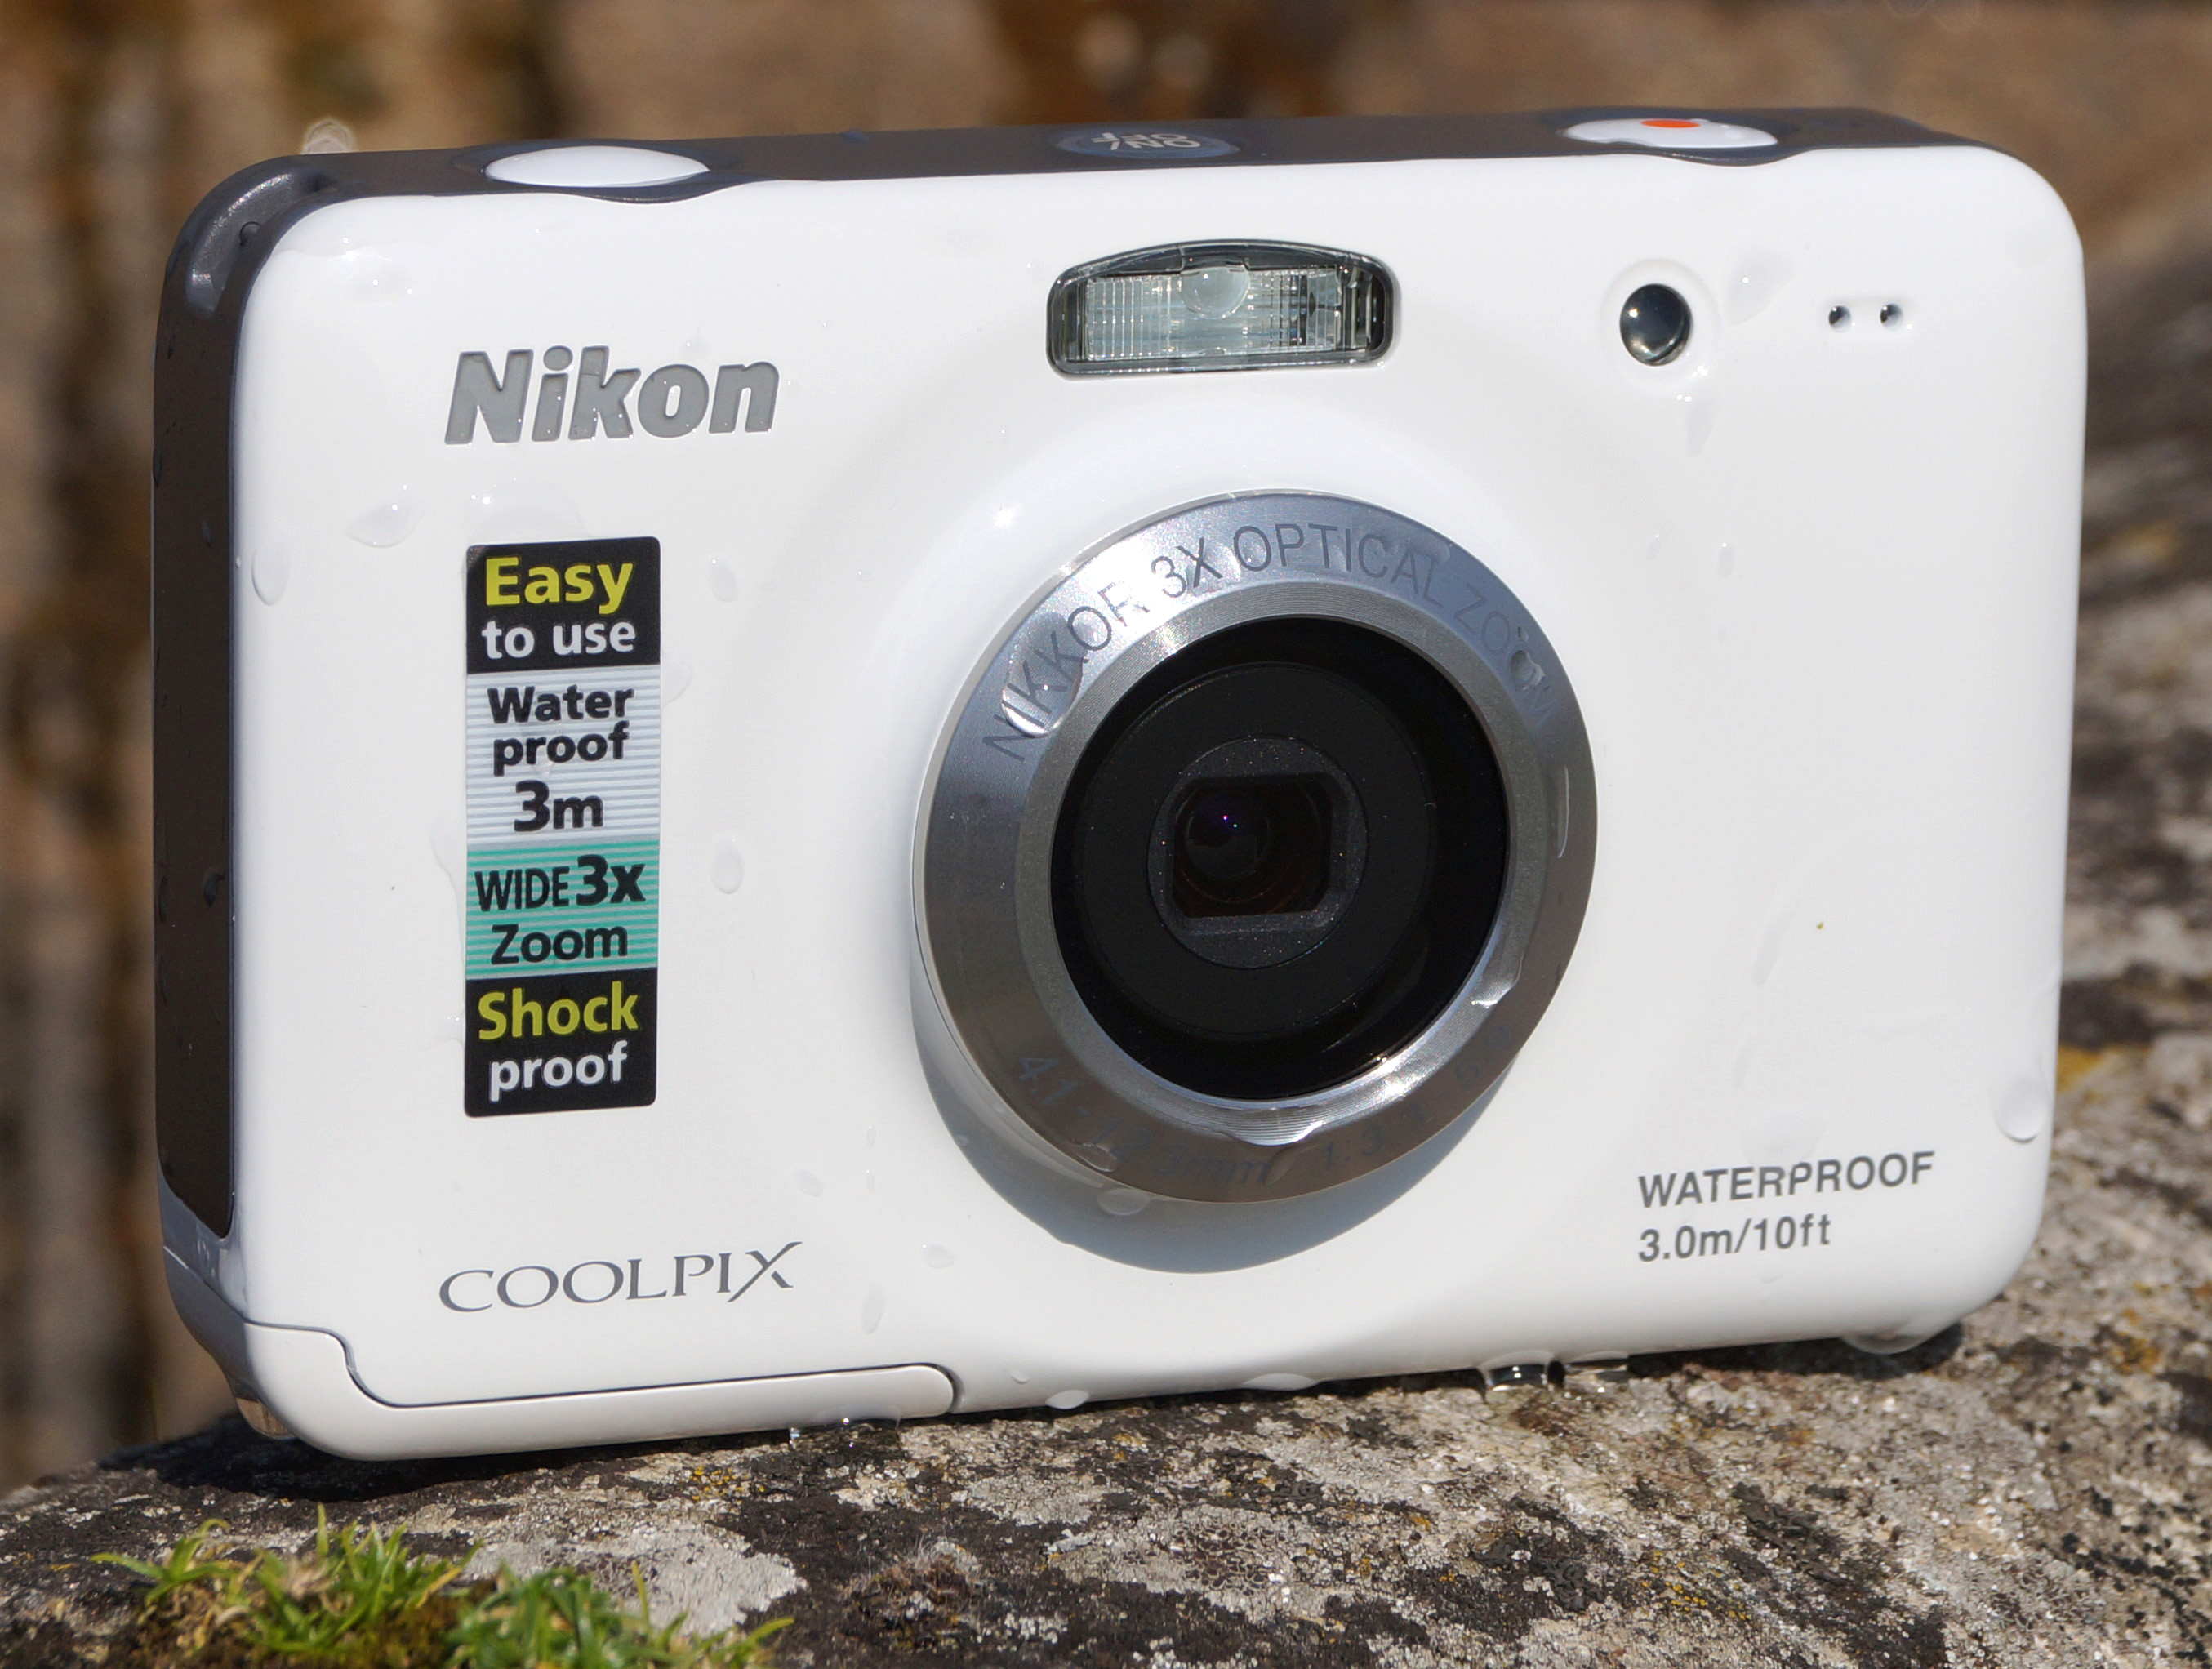 Nikon Coolpix S30 Waterproof Camera Review